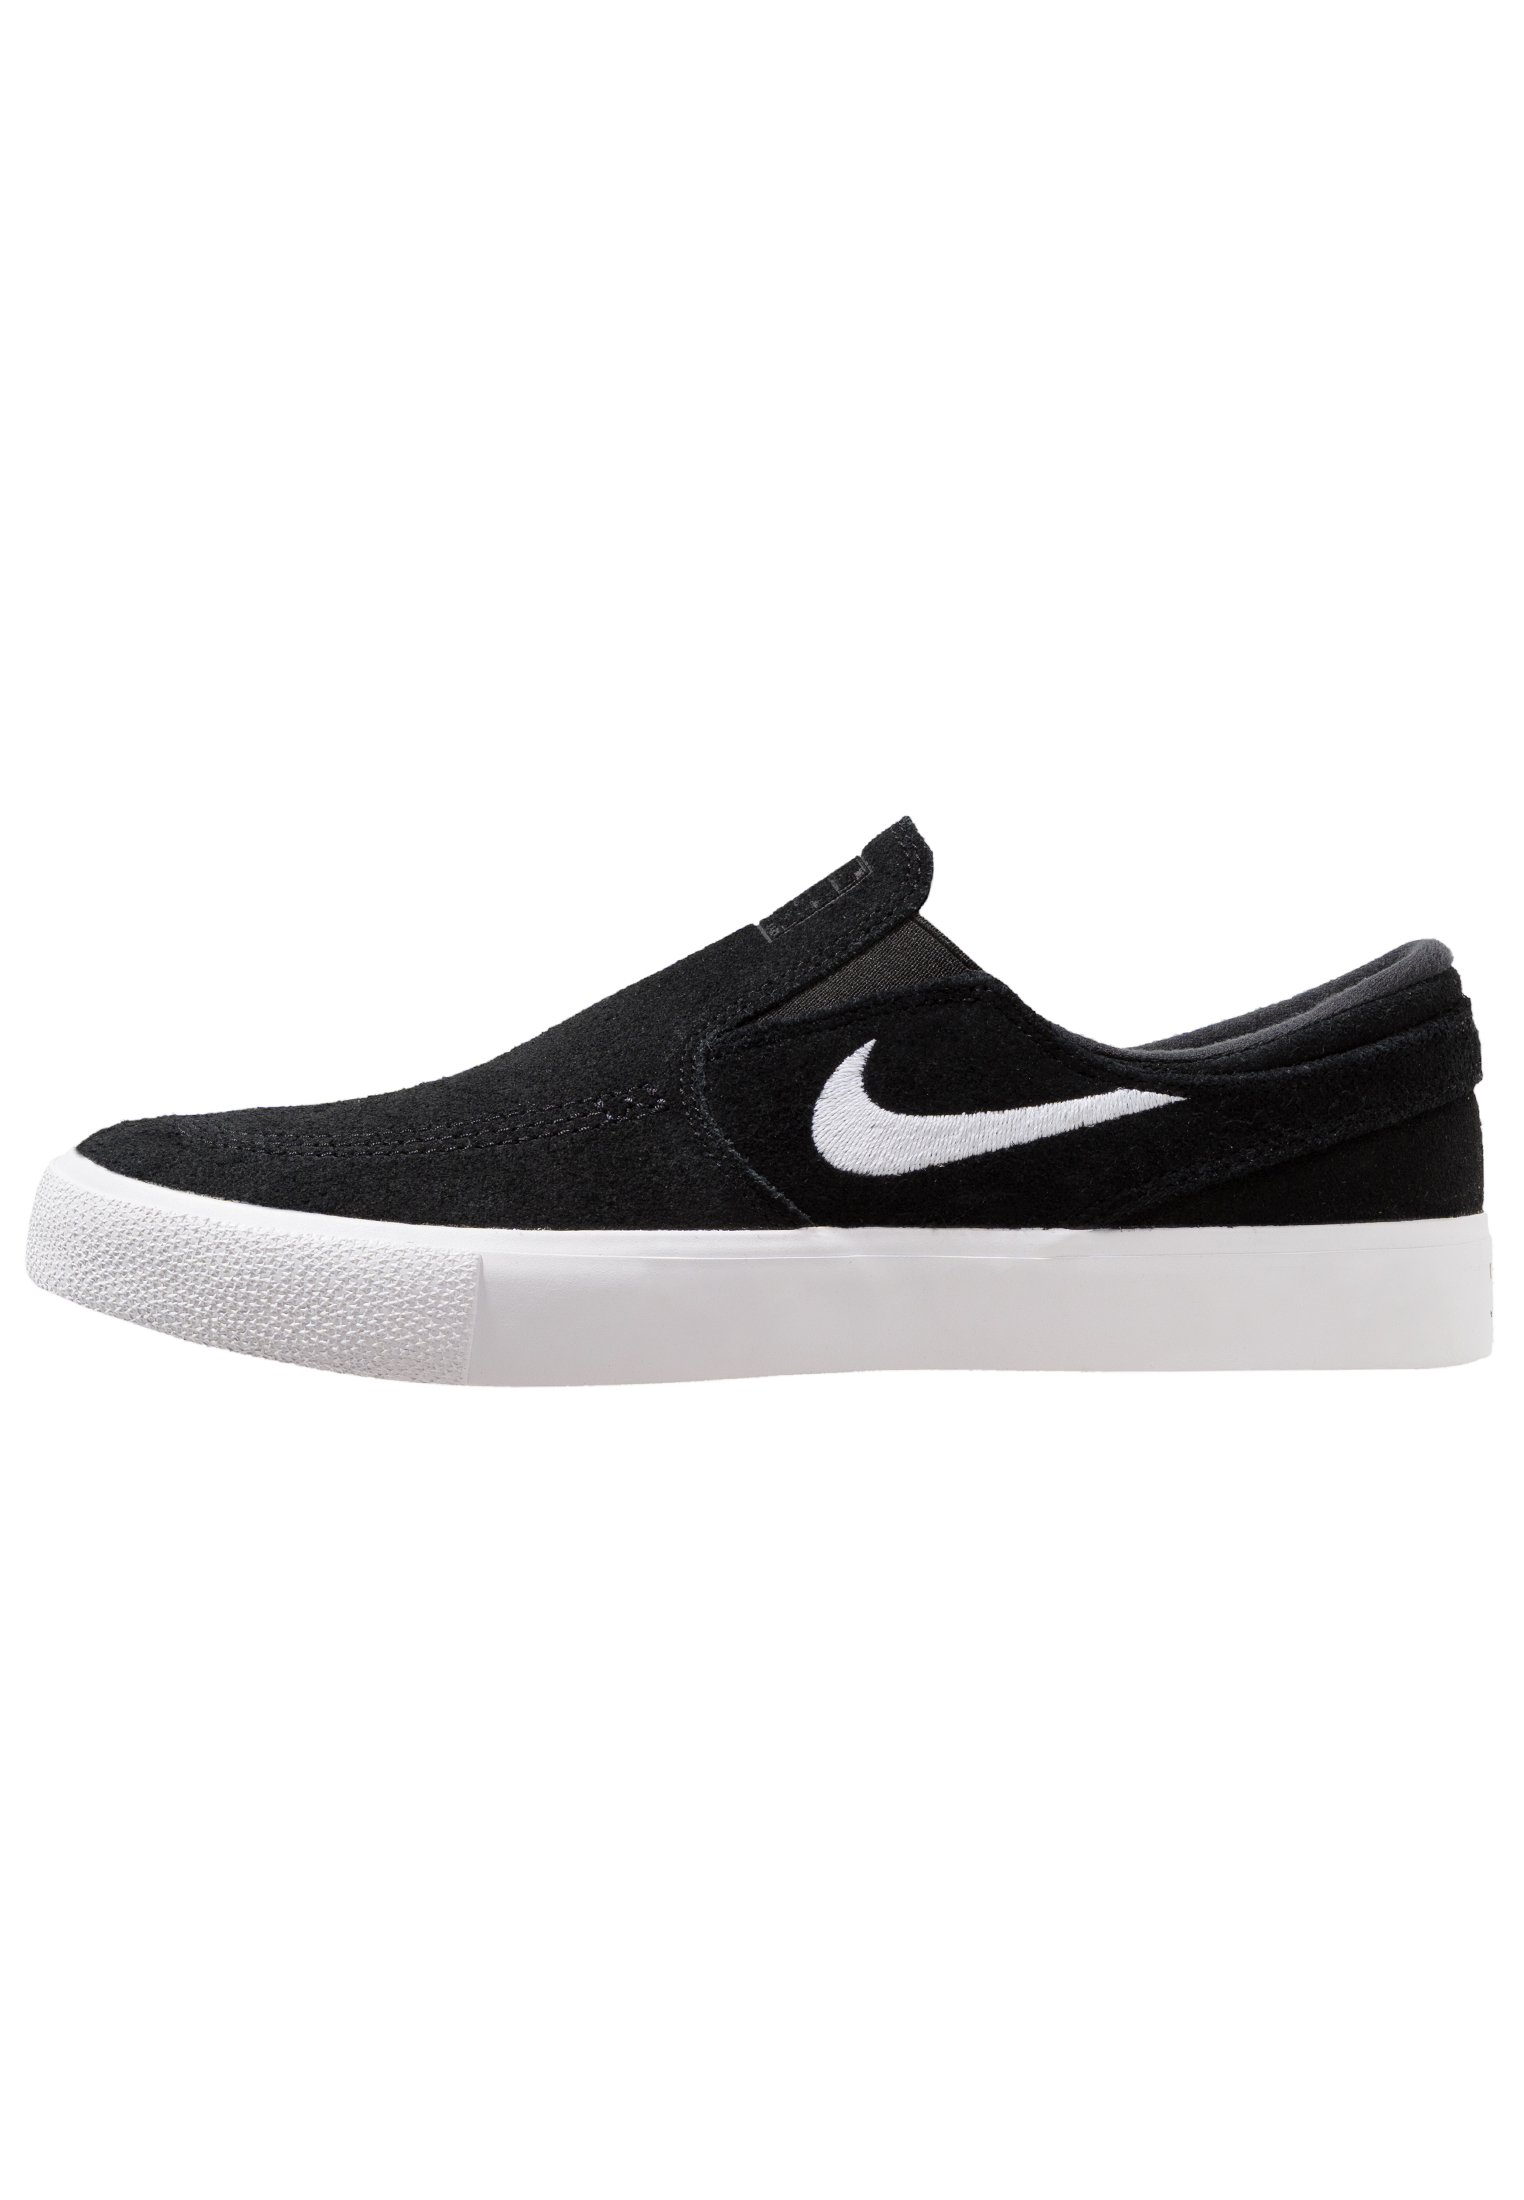 Nike Sb Zoom Janoski - Slippers Black/white